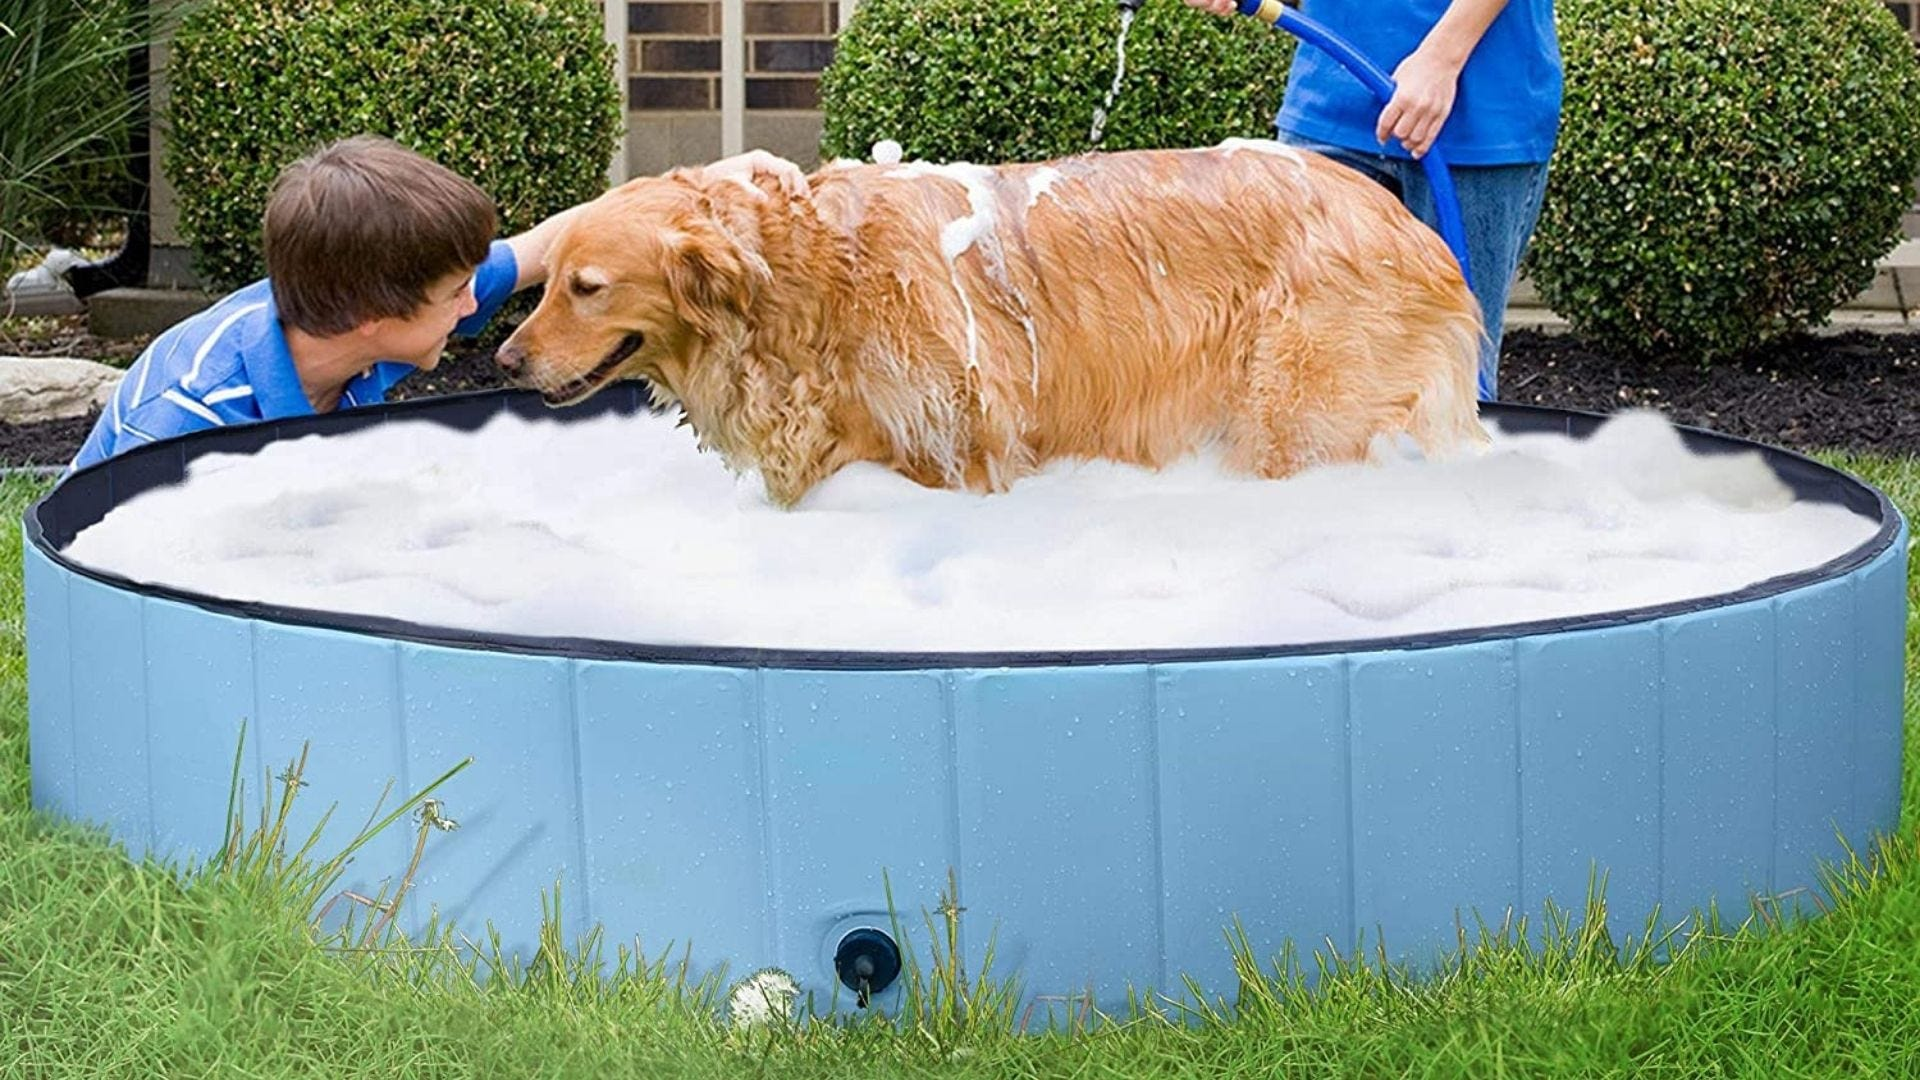 A kid plays with a dog in a dog pool.